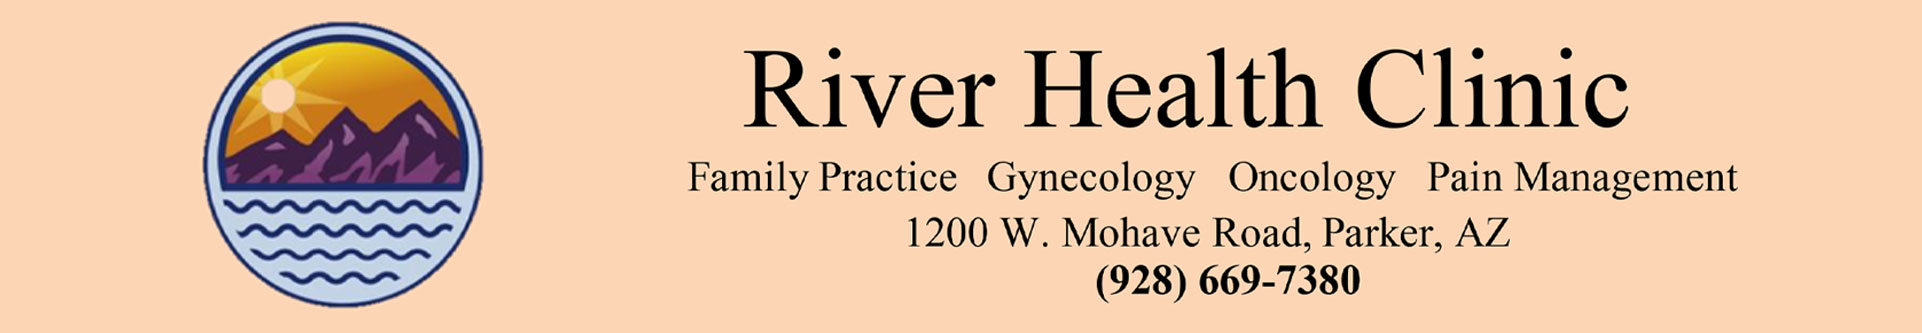 River Health Clinic 